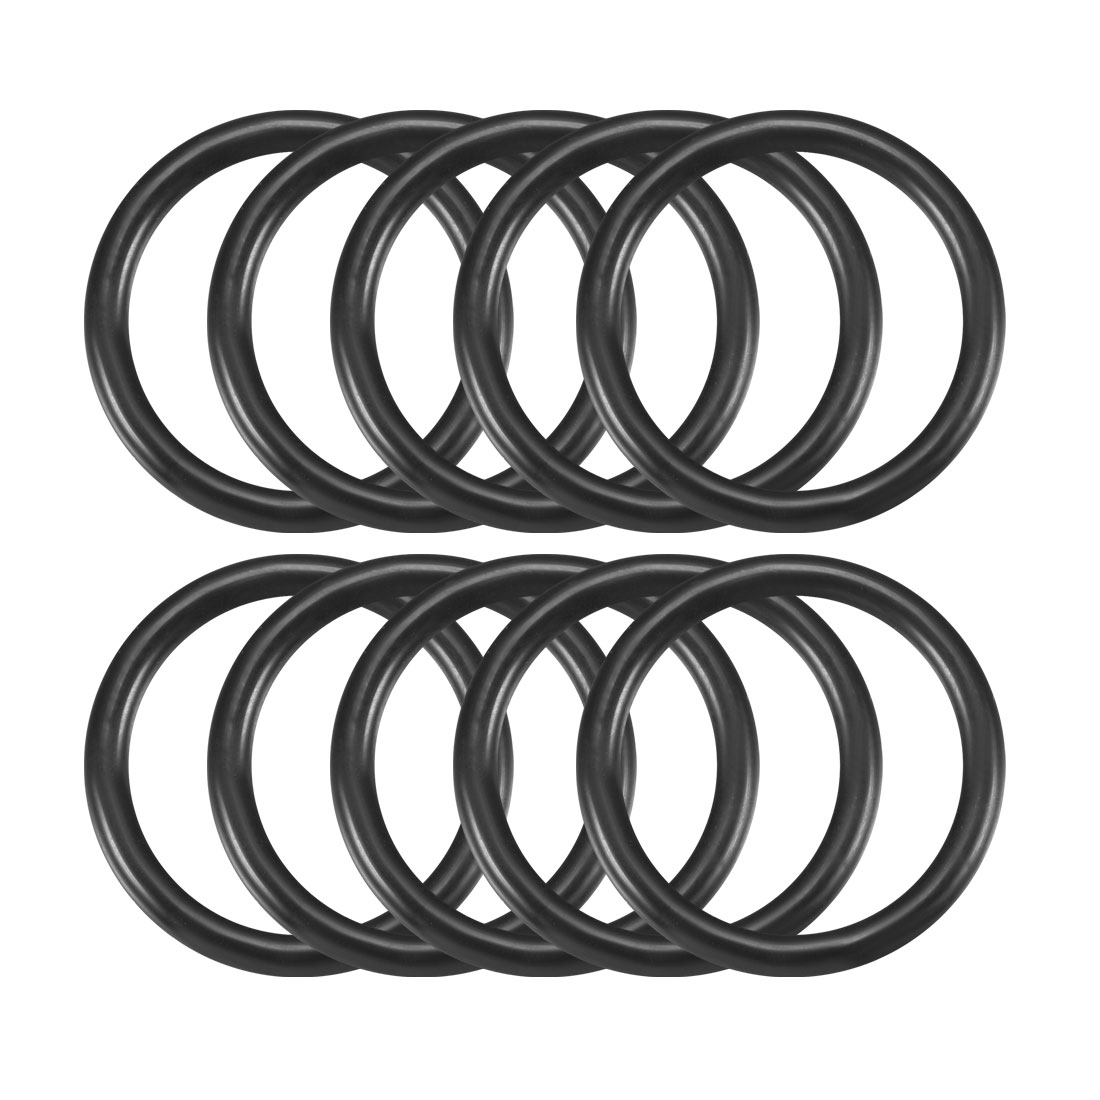 10 Pcs 24mm x 3.5mm Black Silicone O Rings Oil Seals Gaskets